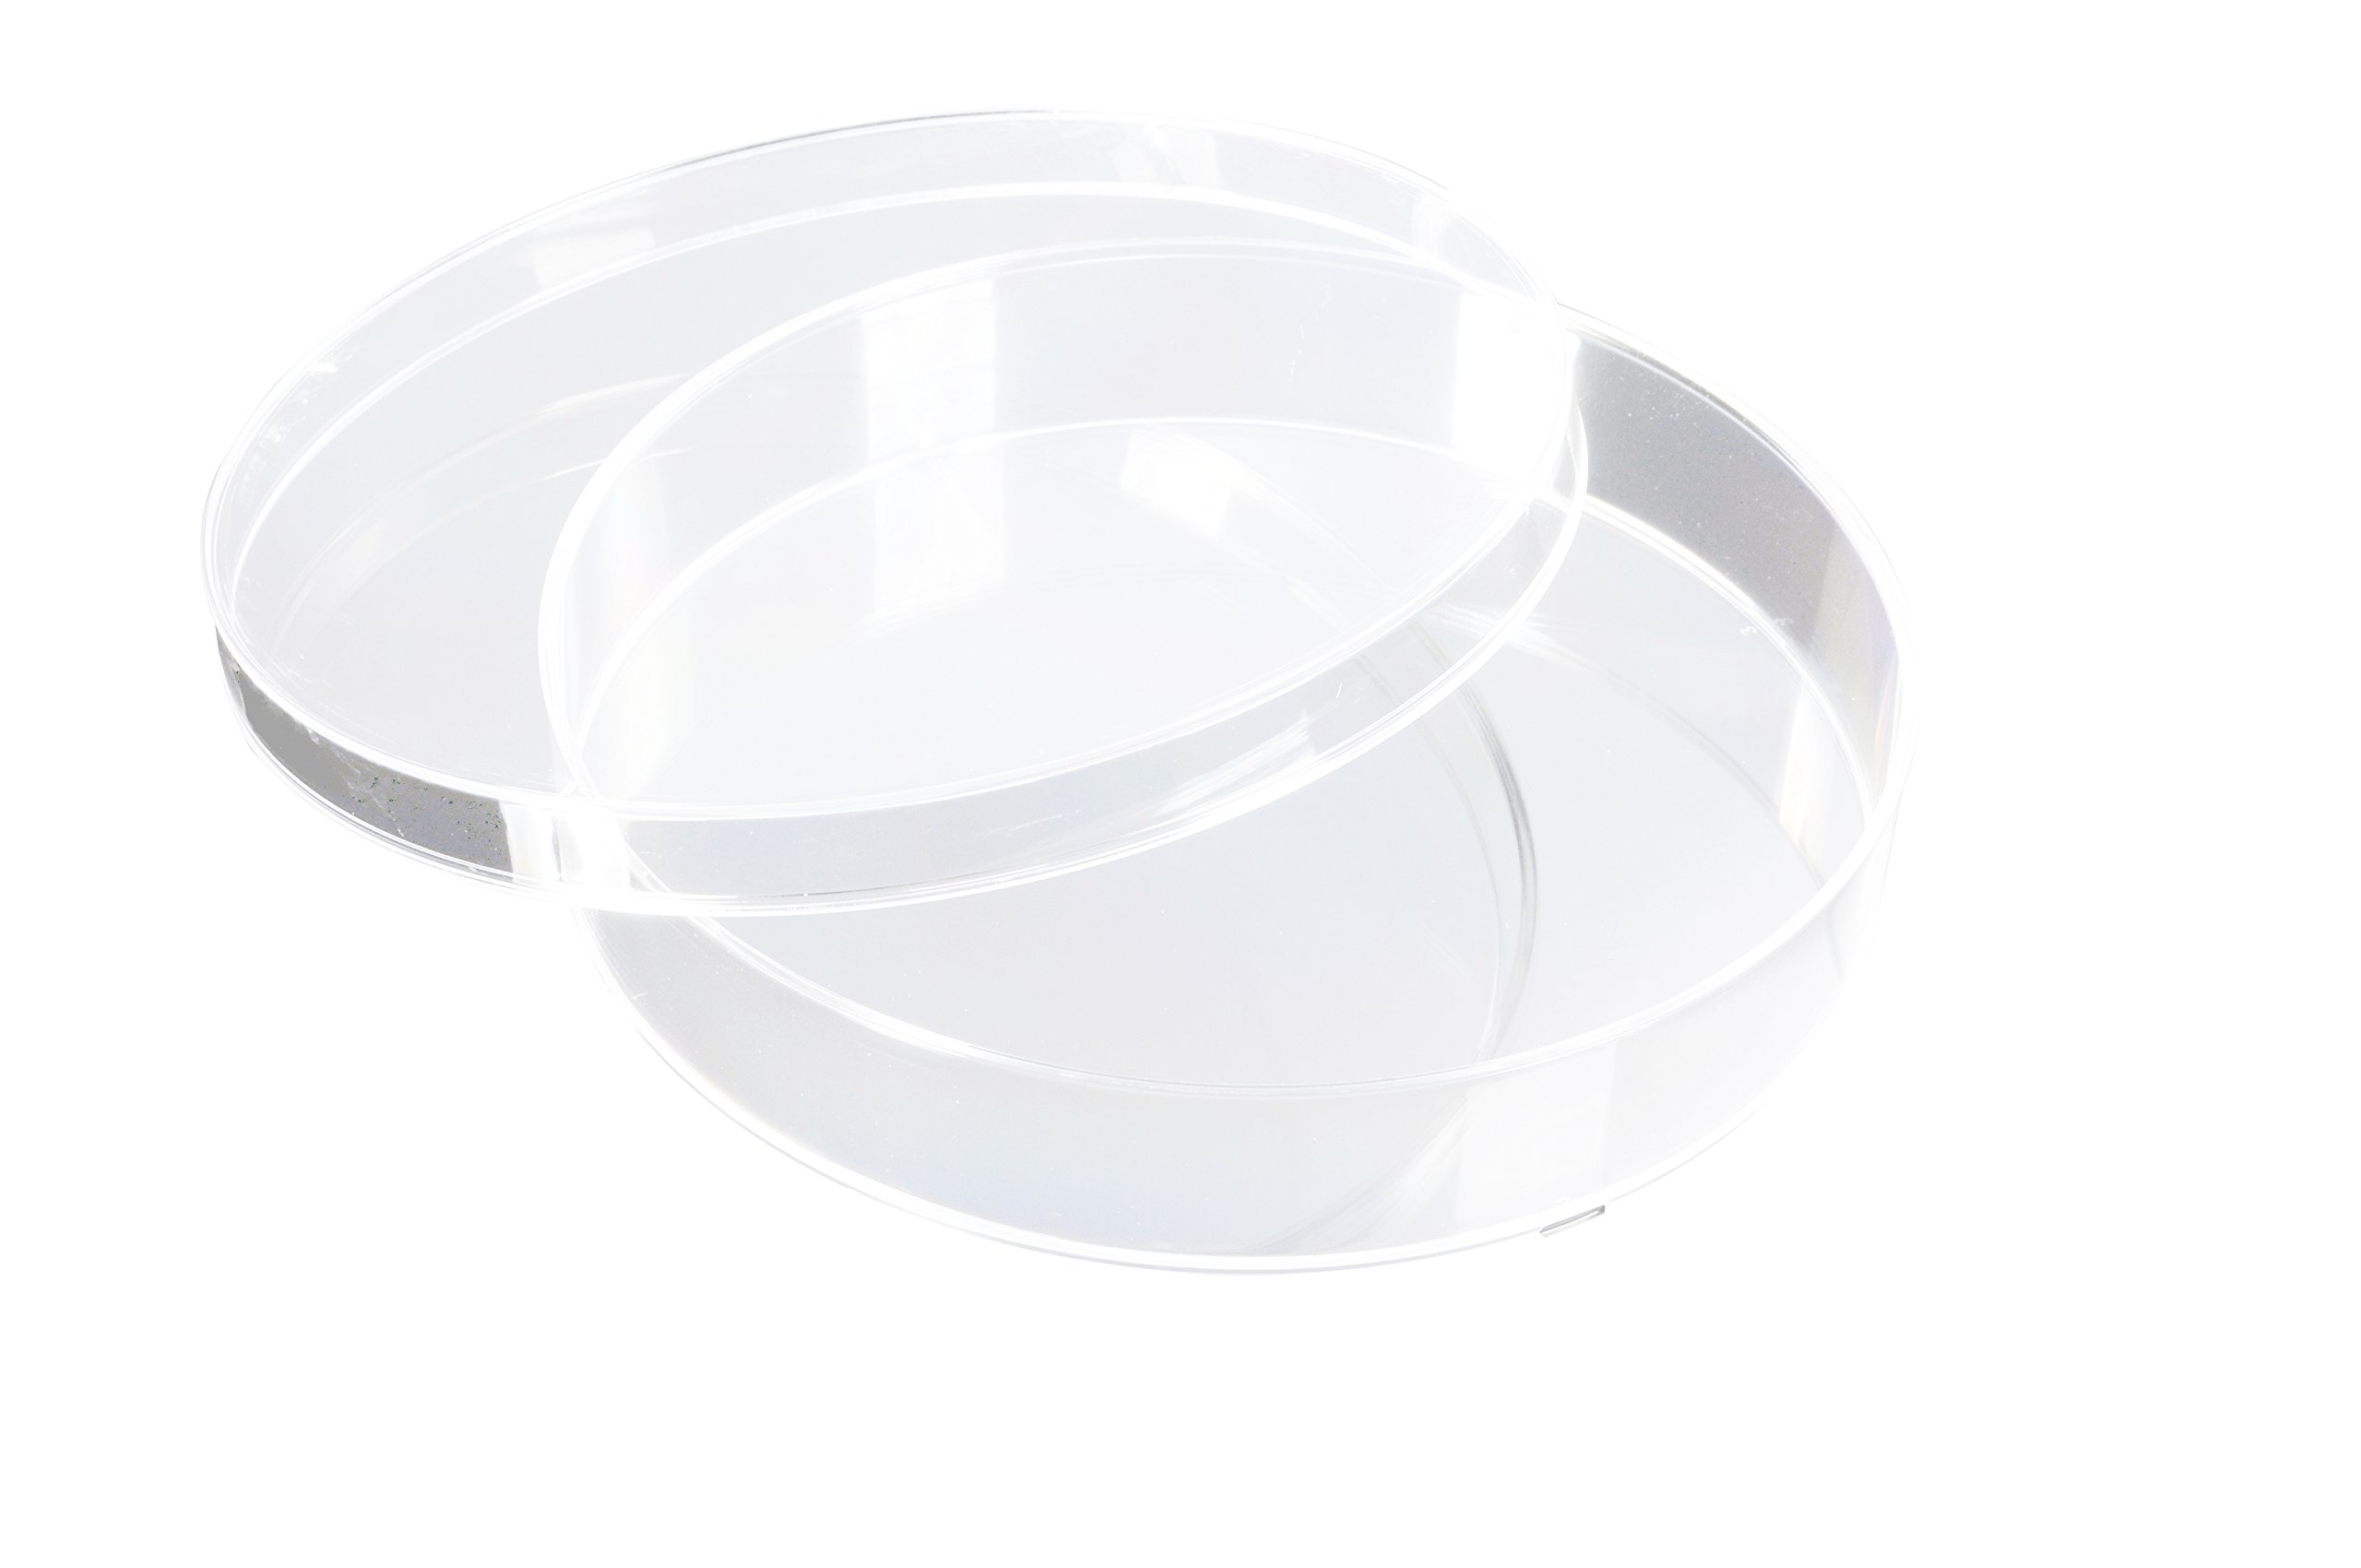 Biologix 07-3100 PS Cell Culture Dish (Pack of 200)